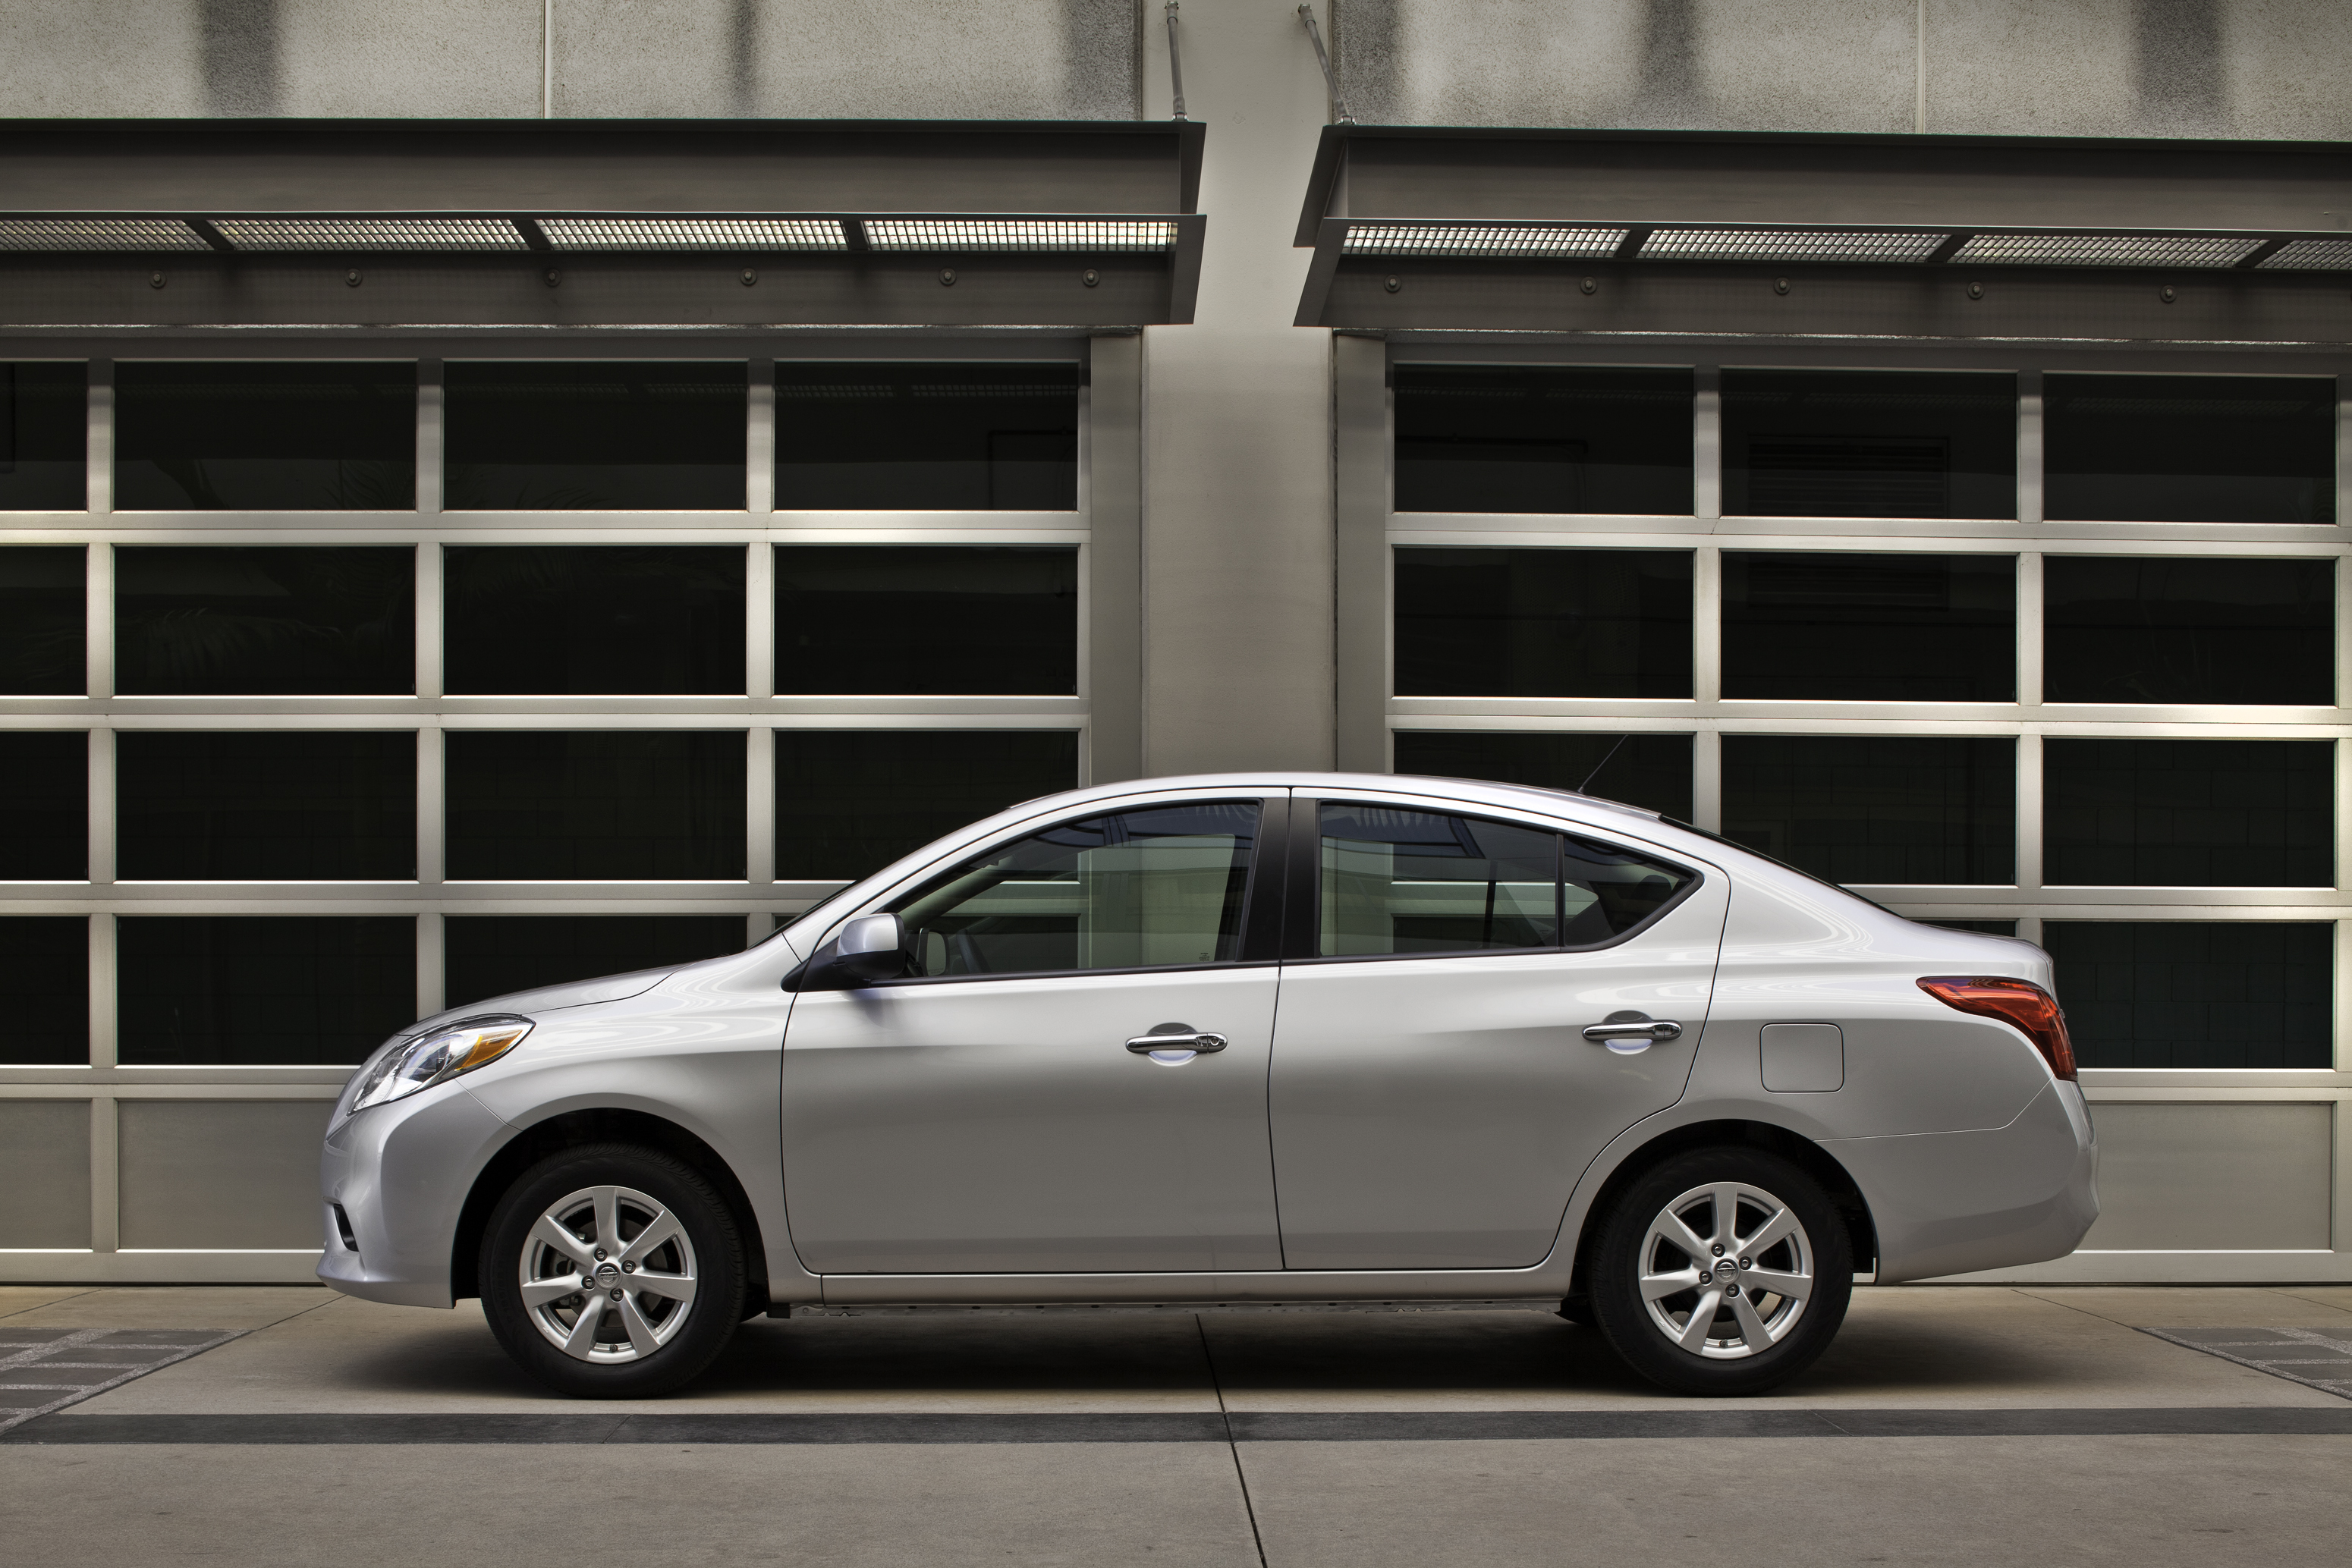 First Test: 2012 Nissan Versa SL